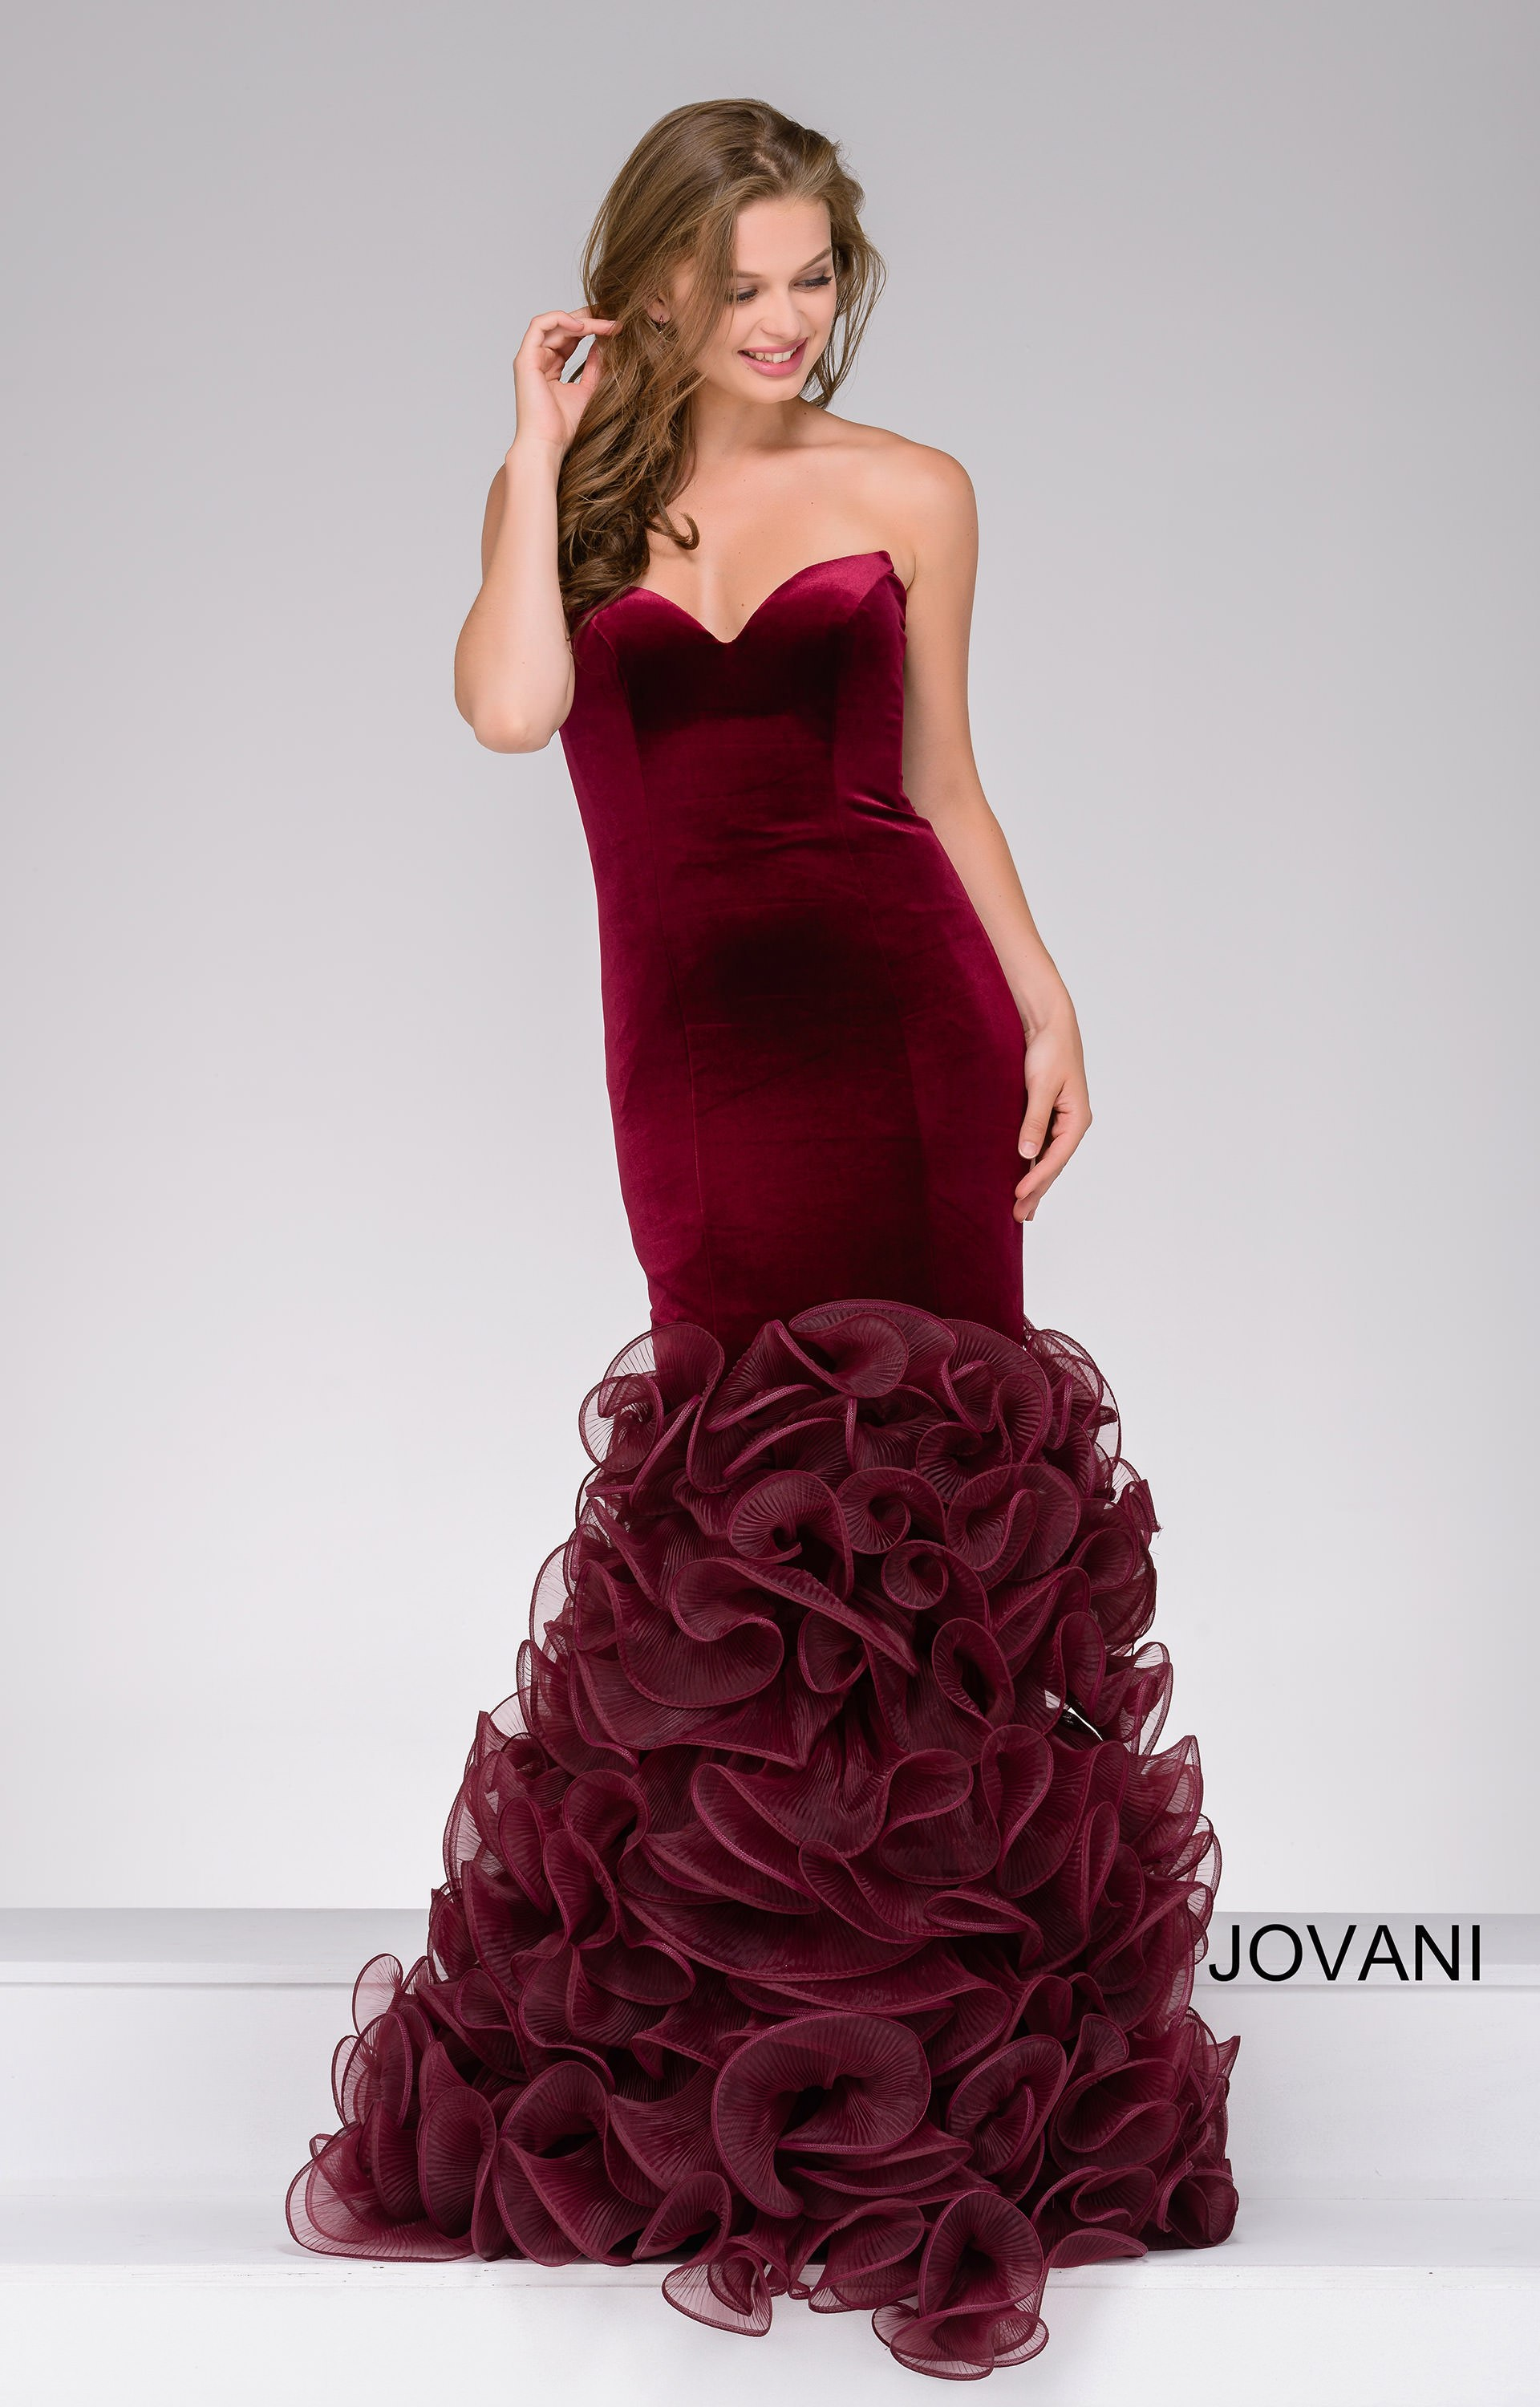 Jovani 46609 Strapless Velvet Mermaid Organza Dress Prom